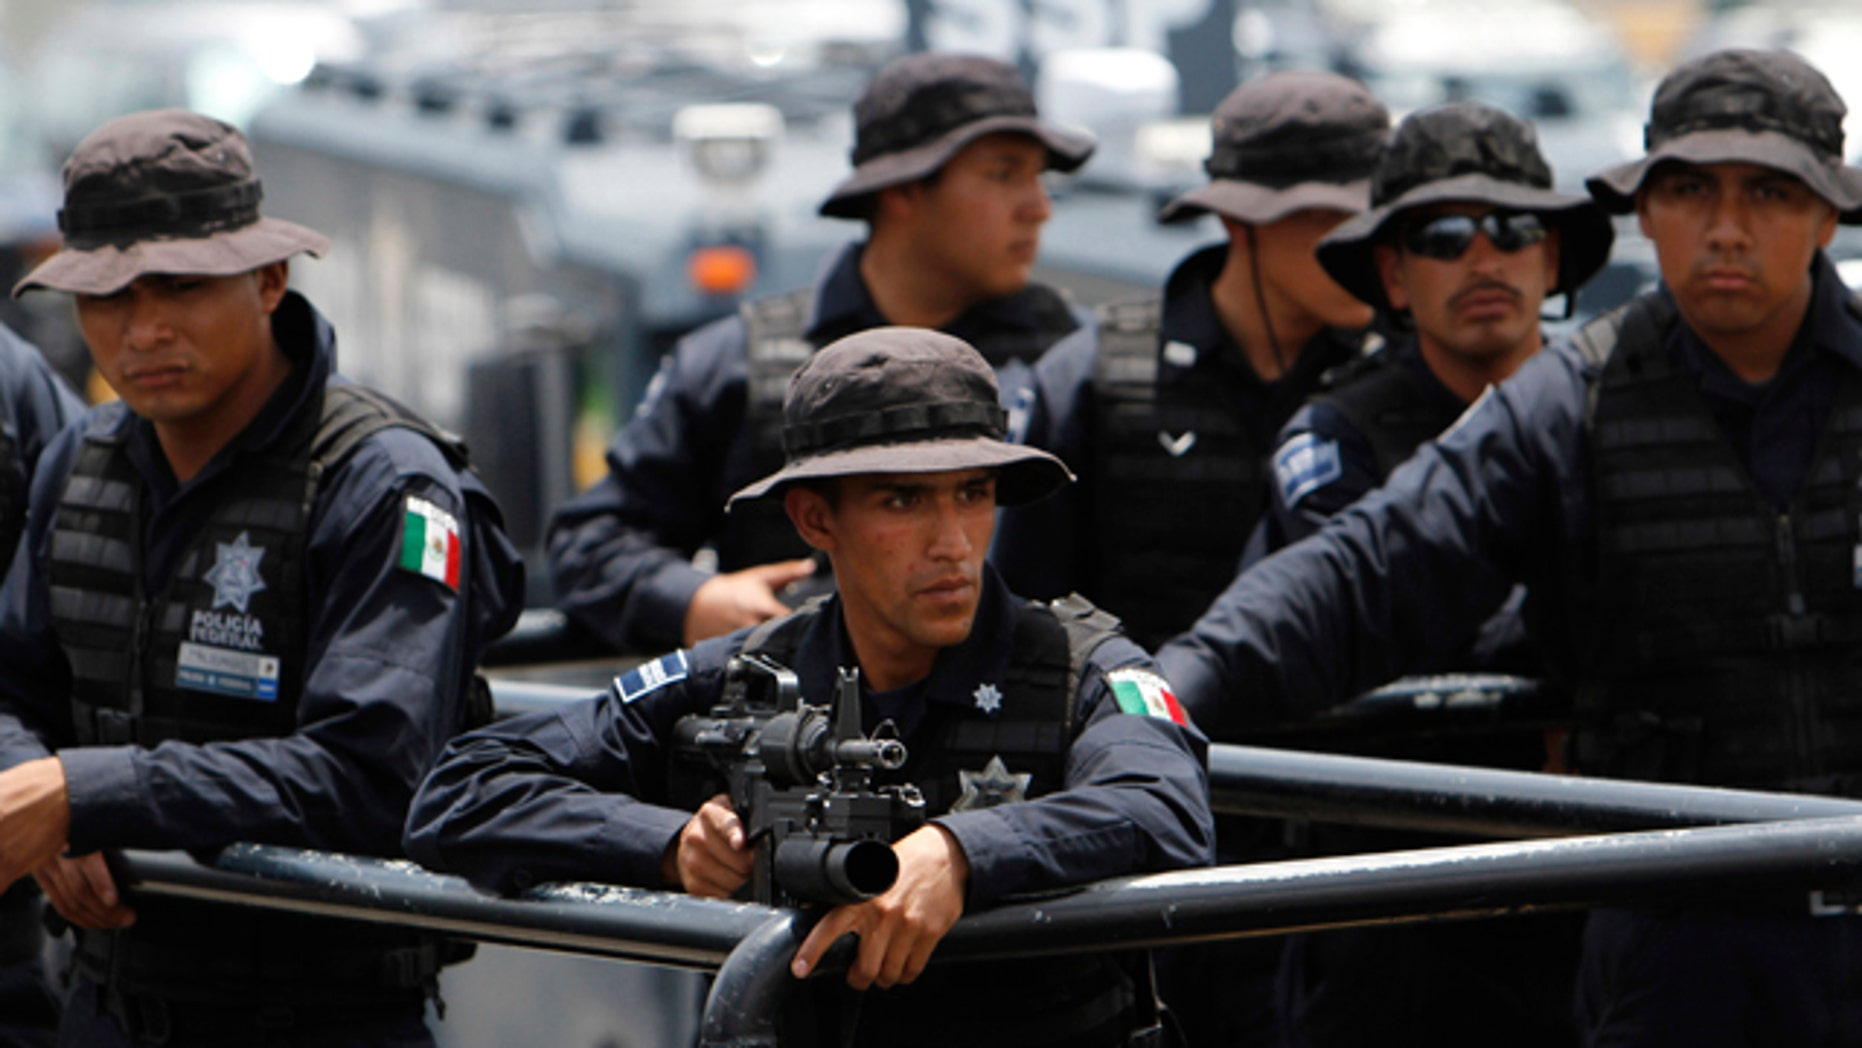 Aug. 27: Federal policemen form part of a caravan en route to Monterrey, at the federal police center in Mexico City.